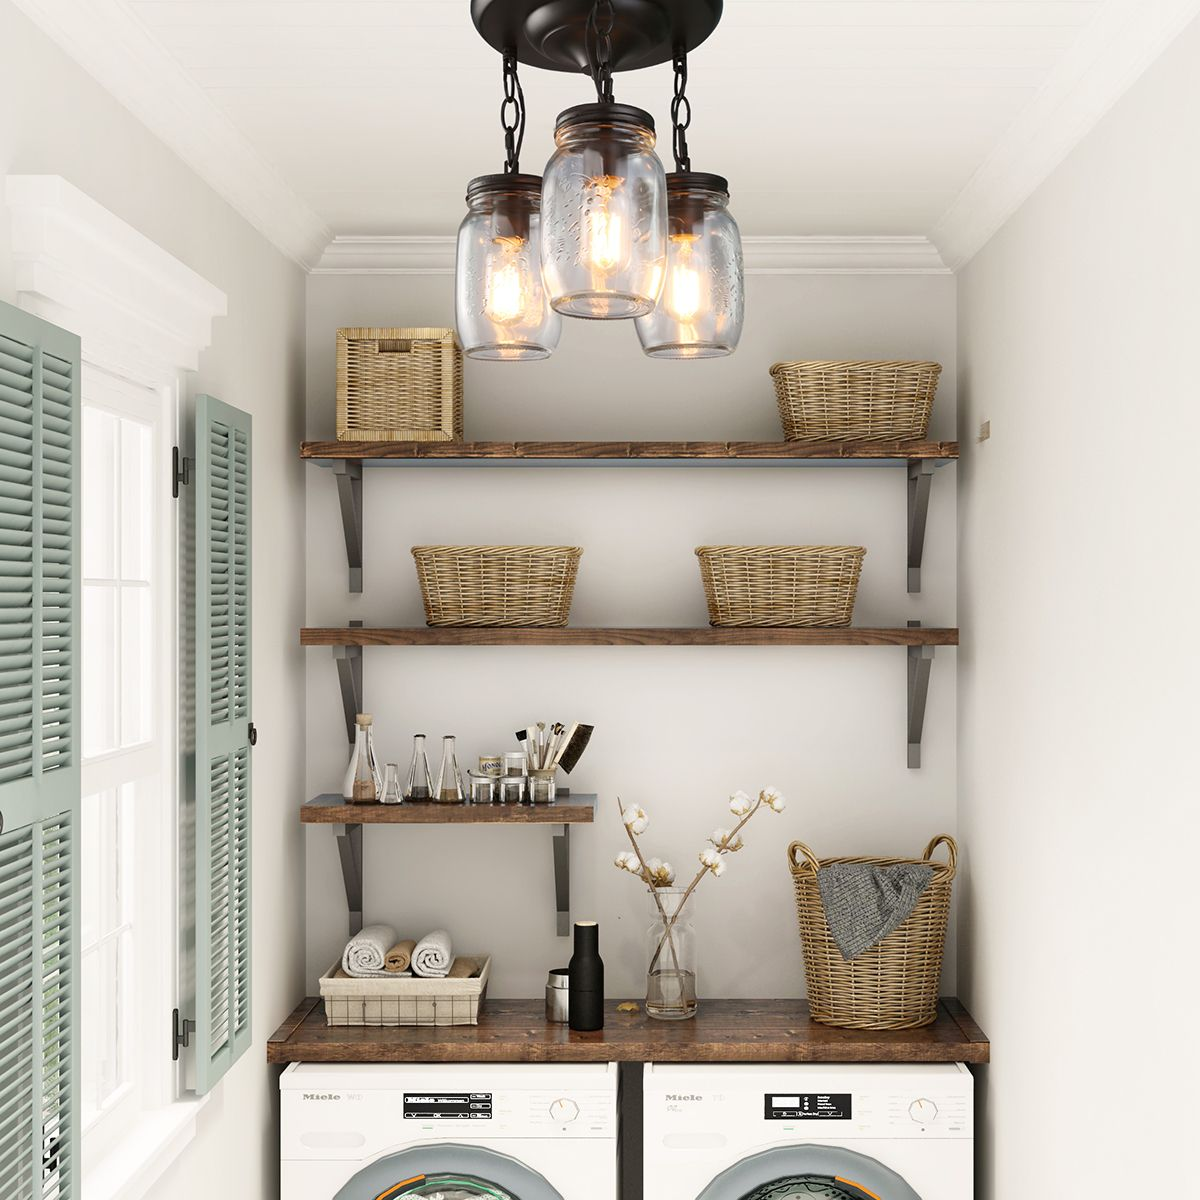 Find More Inspiration For Laundry Room Lighting